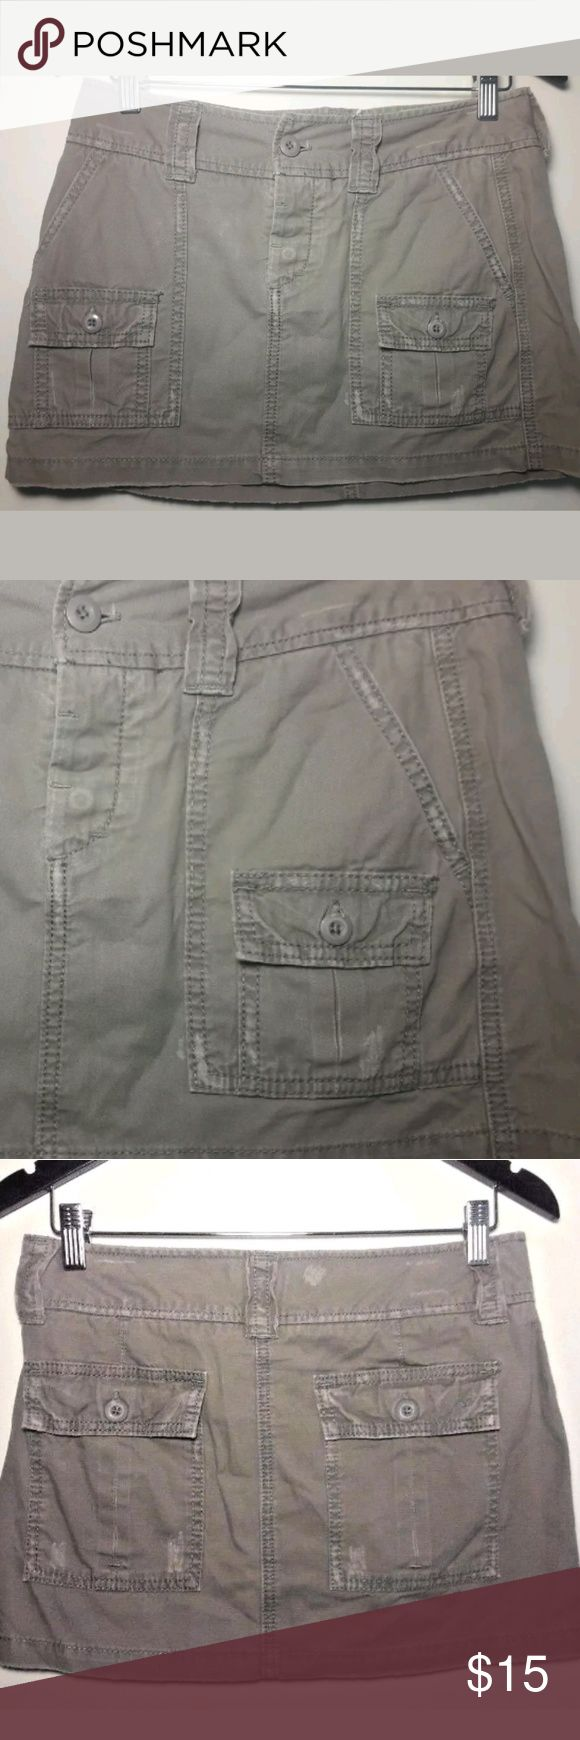 American Eagle Outfitters Cargo Mini Skirt Size 0 American Eagle Outfitters   Gray Distressed Cargo Mini Skirt 100% Cotton. Very cute. Button fly multiple pockets.  Women's Size 0.  Pre-owned in excellent condition. American Eagle Outfitters Skirts Mini